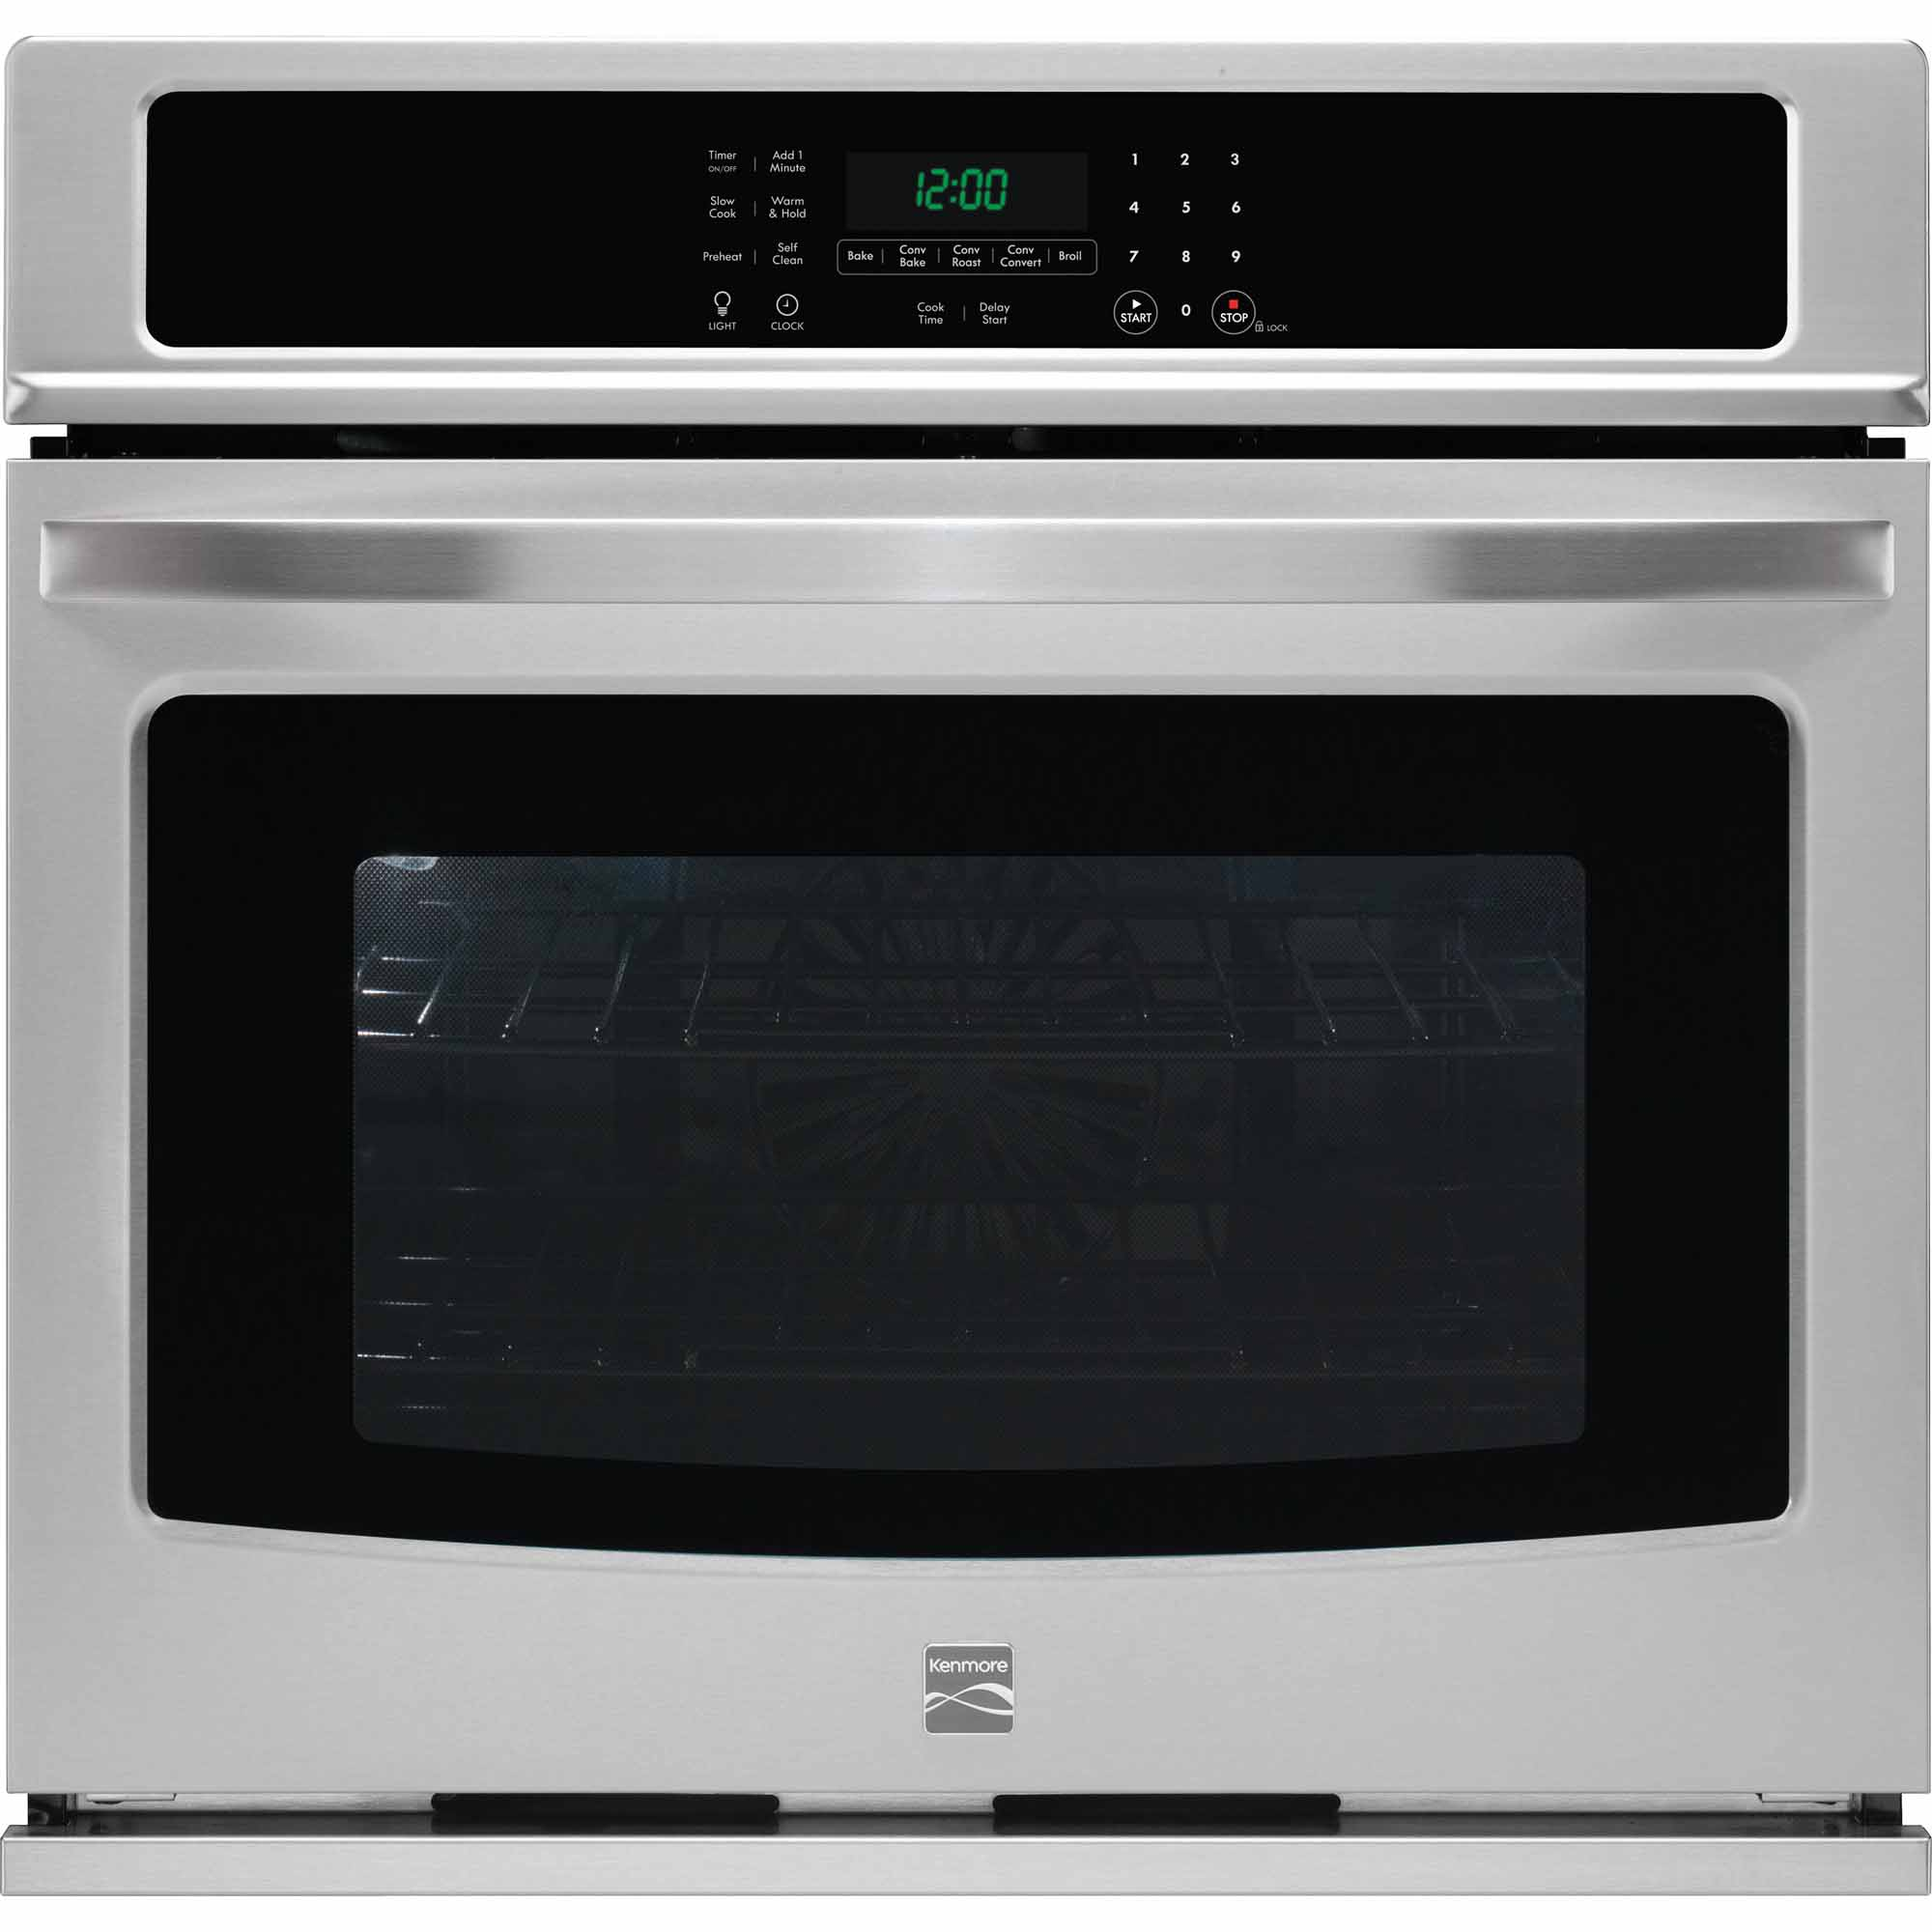 Kenmore 49513 30 Electric Self-Clean Single Wall Oven /w Convection - Stainless Steel